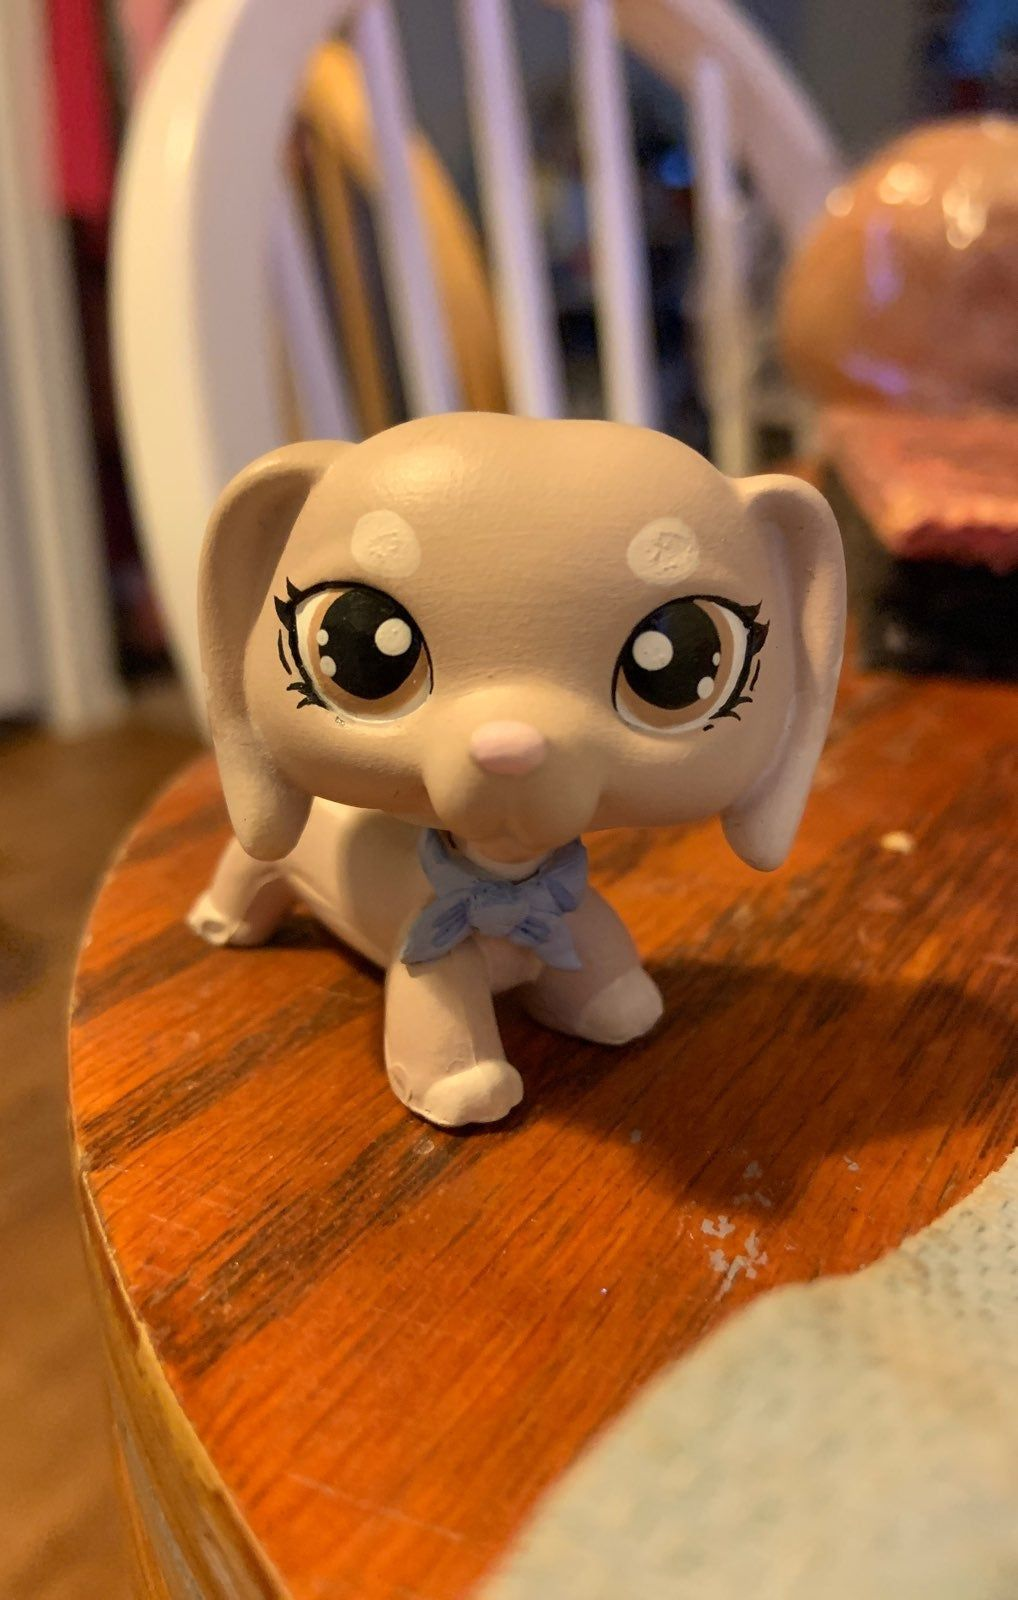 Lps Custom Not Made By Me Please Look At Photos Carefully In Good Condition Custom Lps Lps Toys Lps Dog